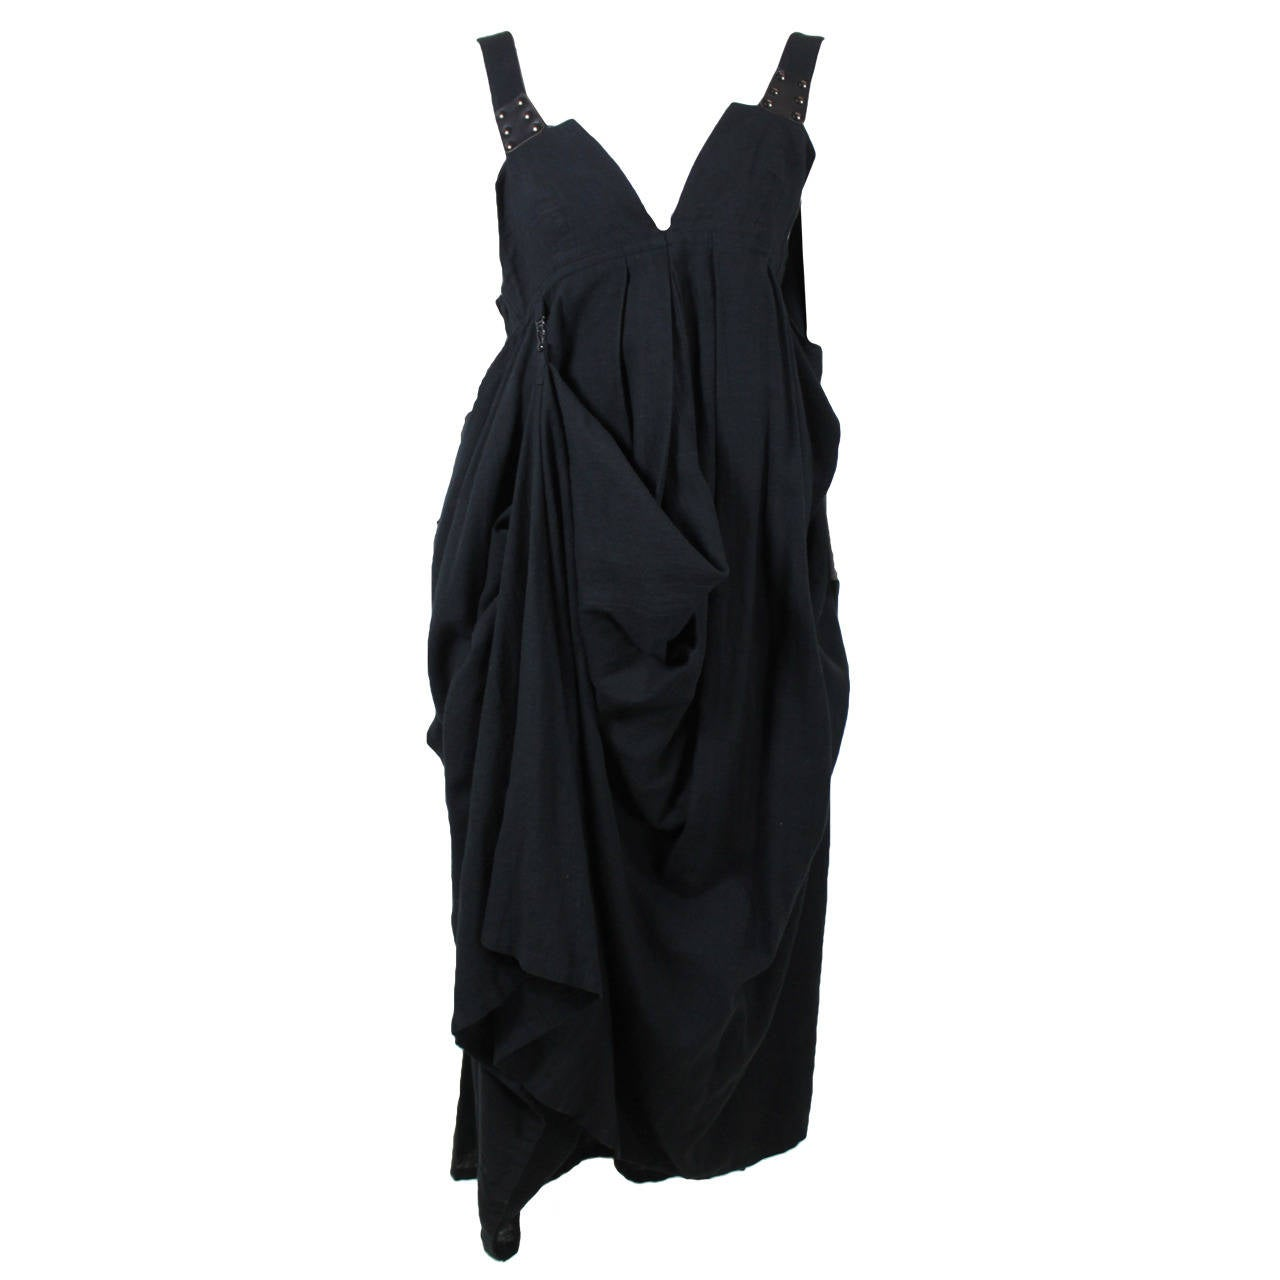 Kansai Black Linen Dress with Cocoon Coat 1